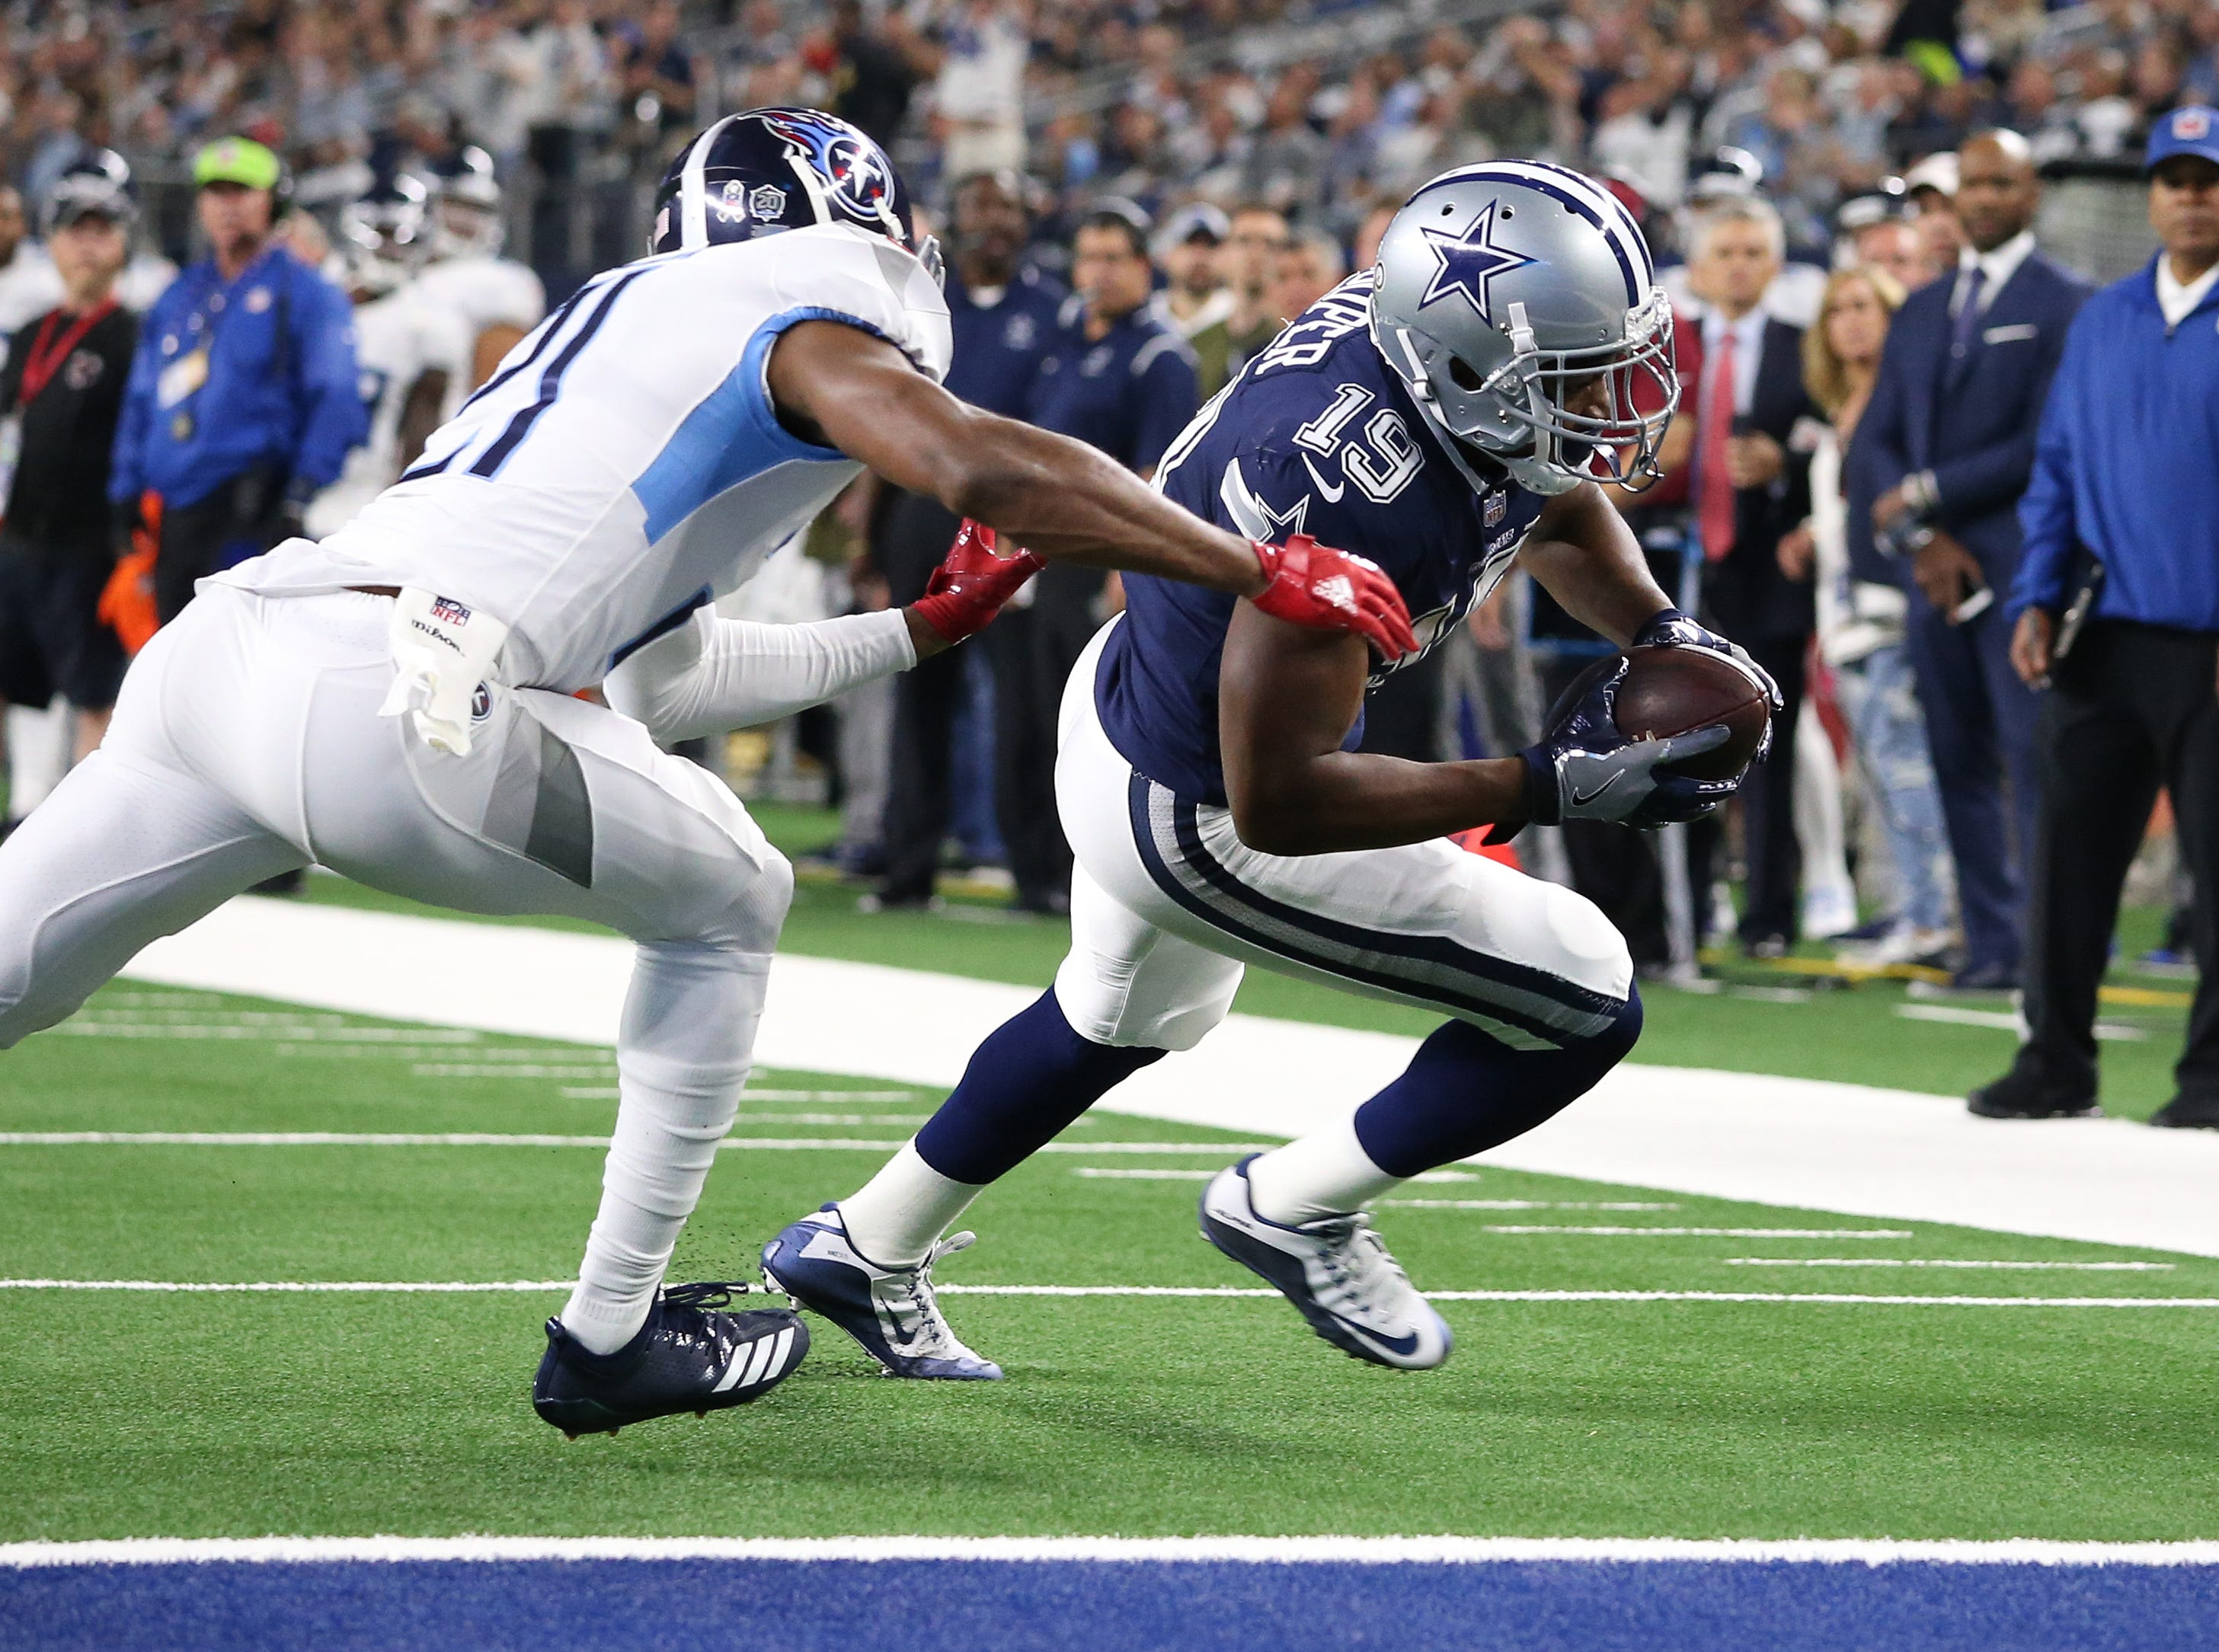 Nov 5, 2018; Arlington, TX, USA; Dallas Cowboys receiver Amari Cooper (19) runs after a reception for a first quarter touchdown against Tennessee Titans cornerback Malcolm Butler (21) at AT&T Stadium.